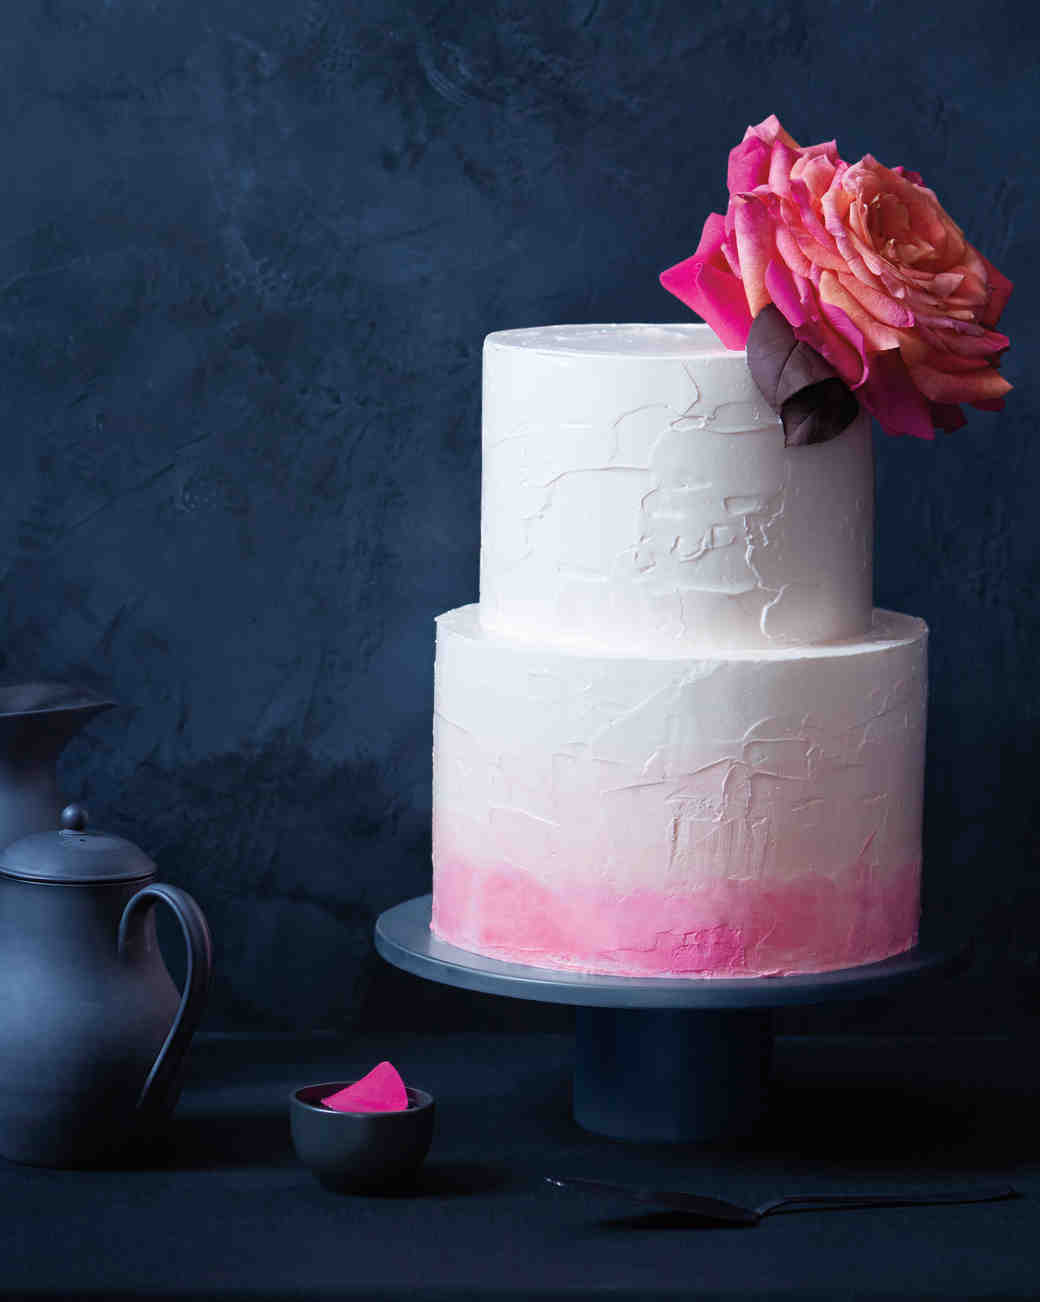 single-bloom-wedding-cake-066-d112282-comp.jpg